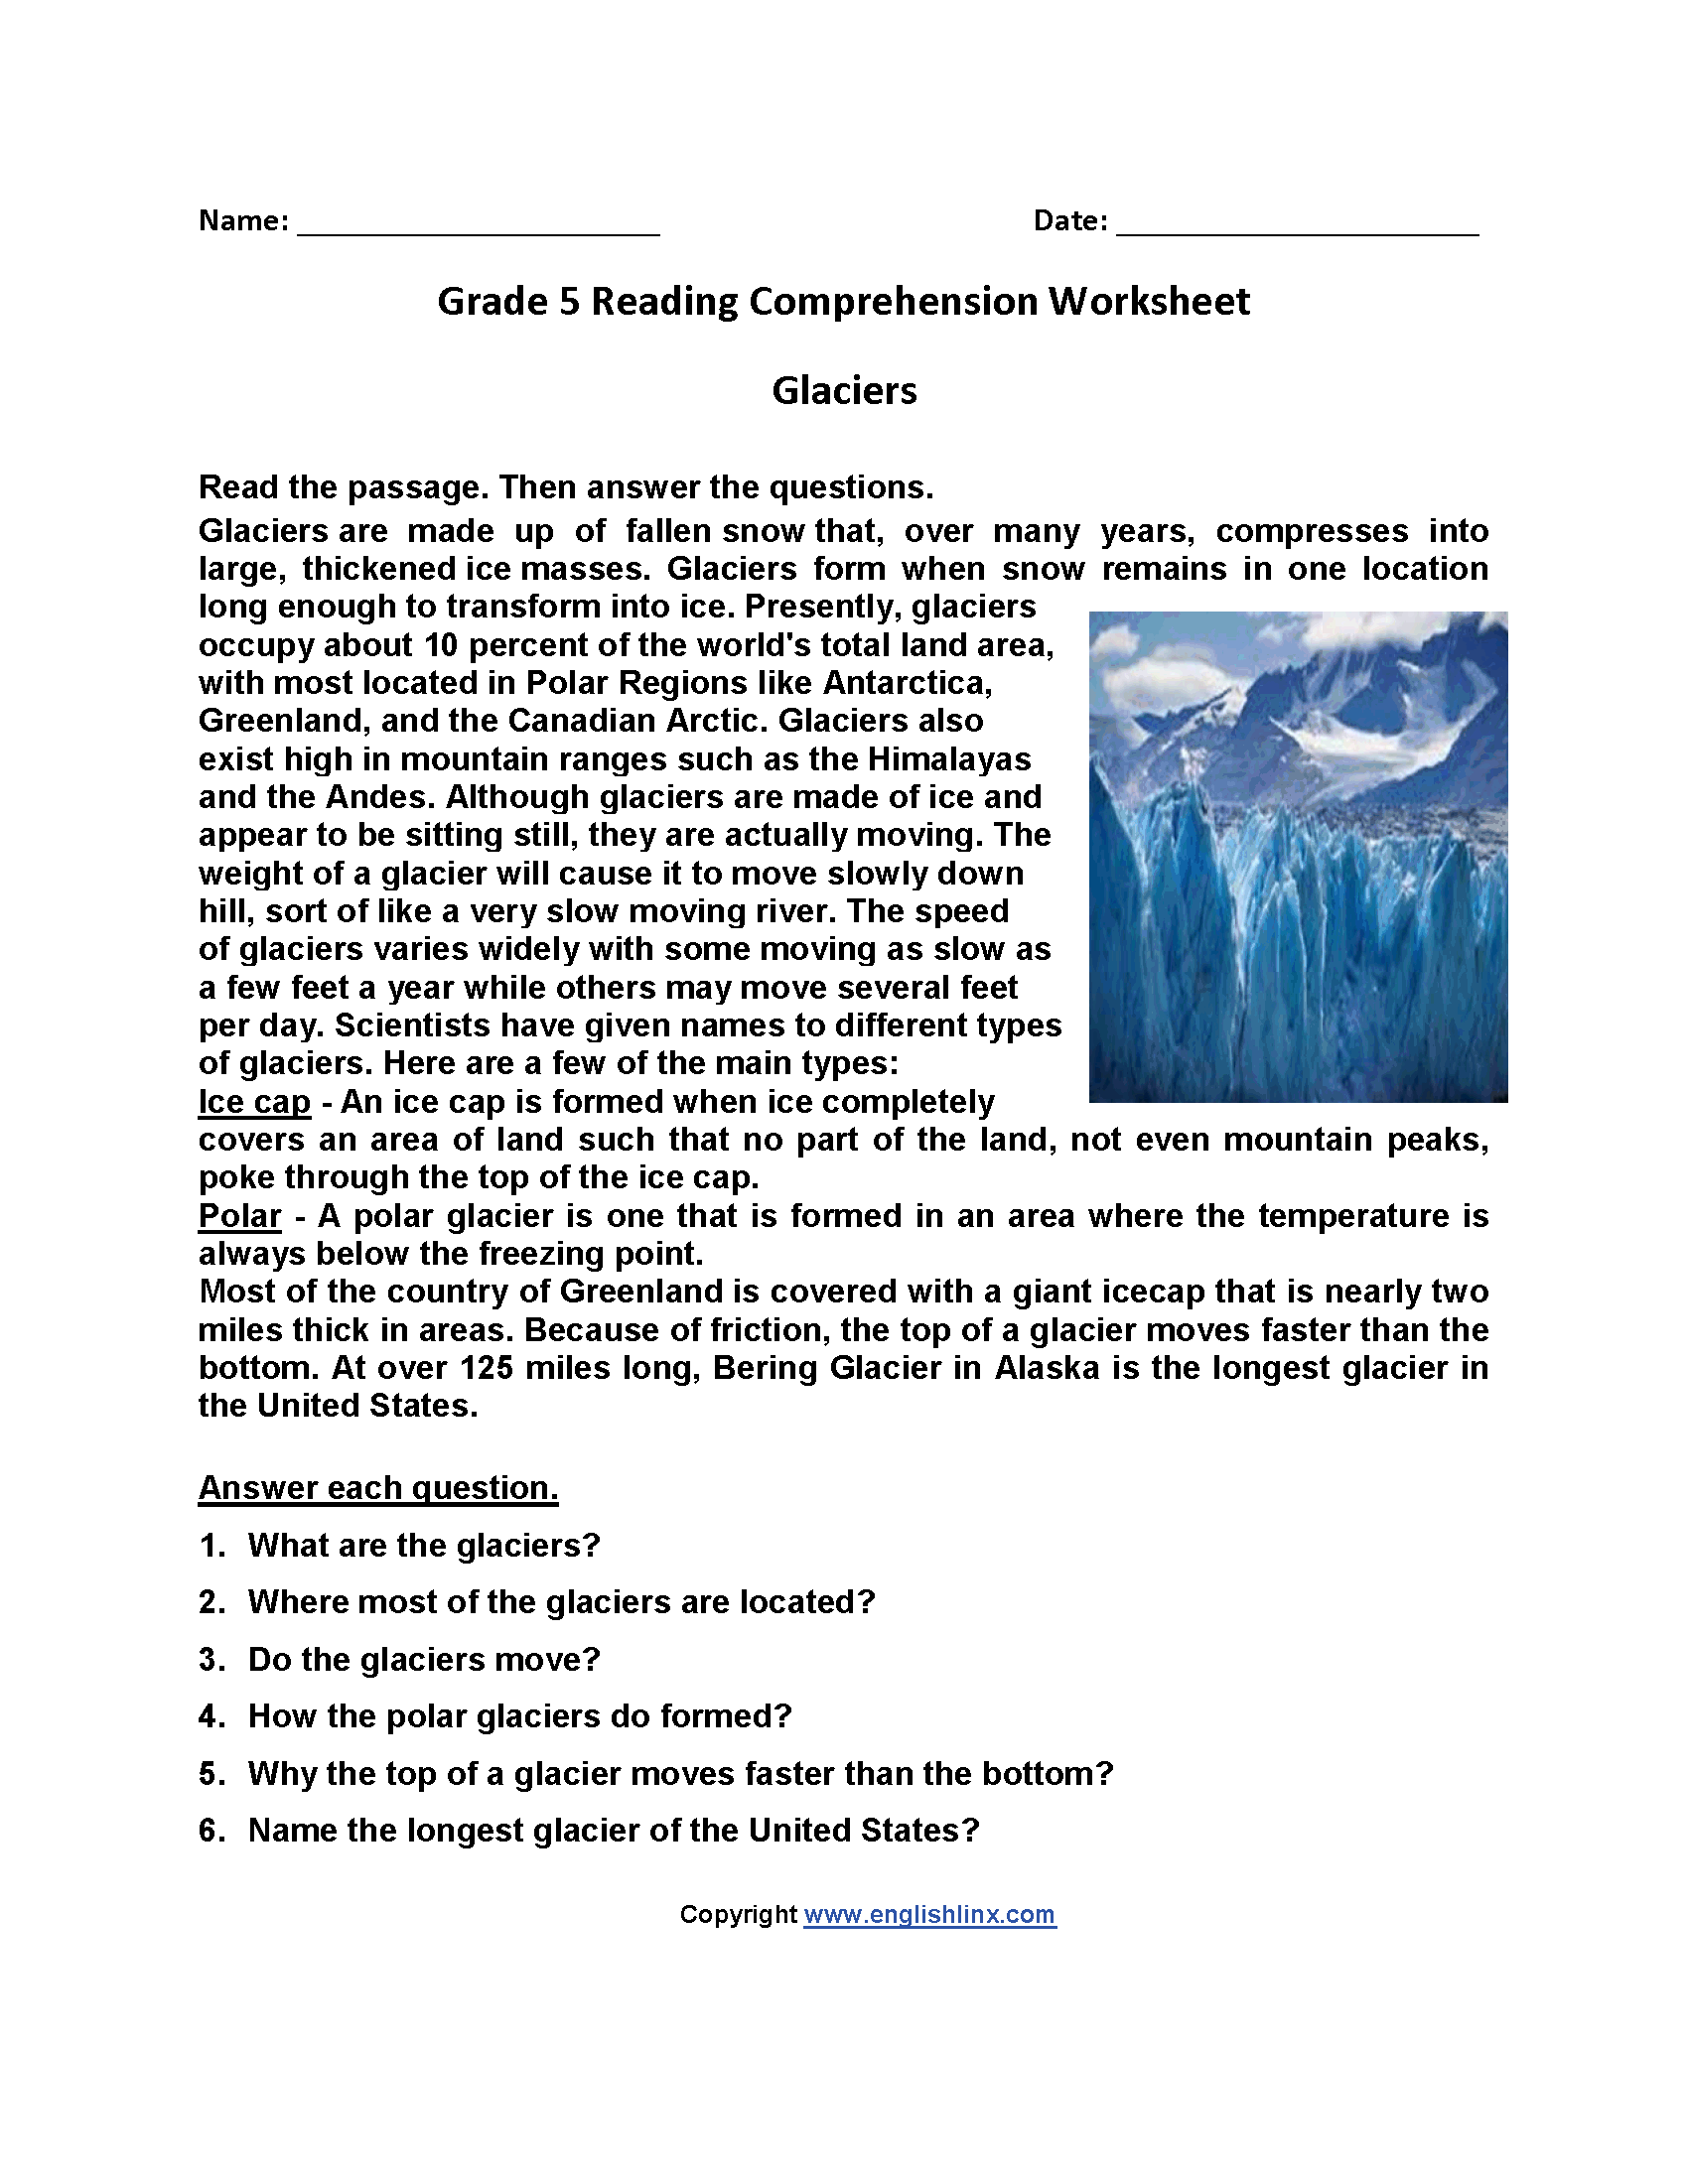 Glaciers Fifth Grade Reading Worksheets THEME Arctic